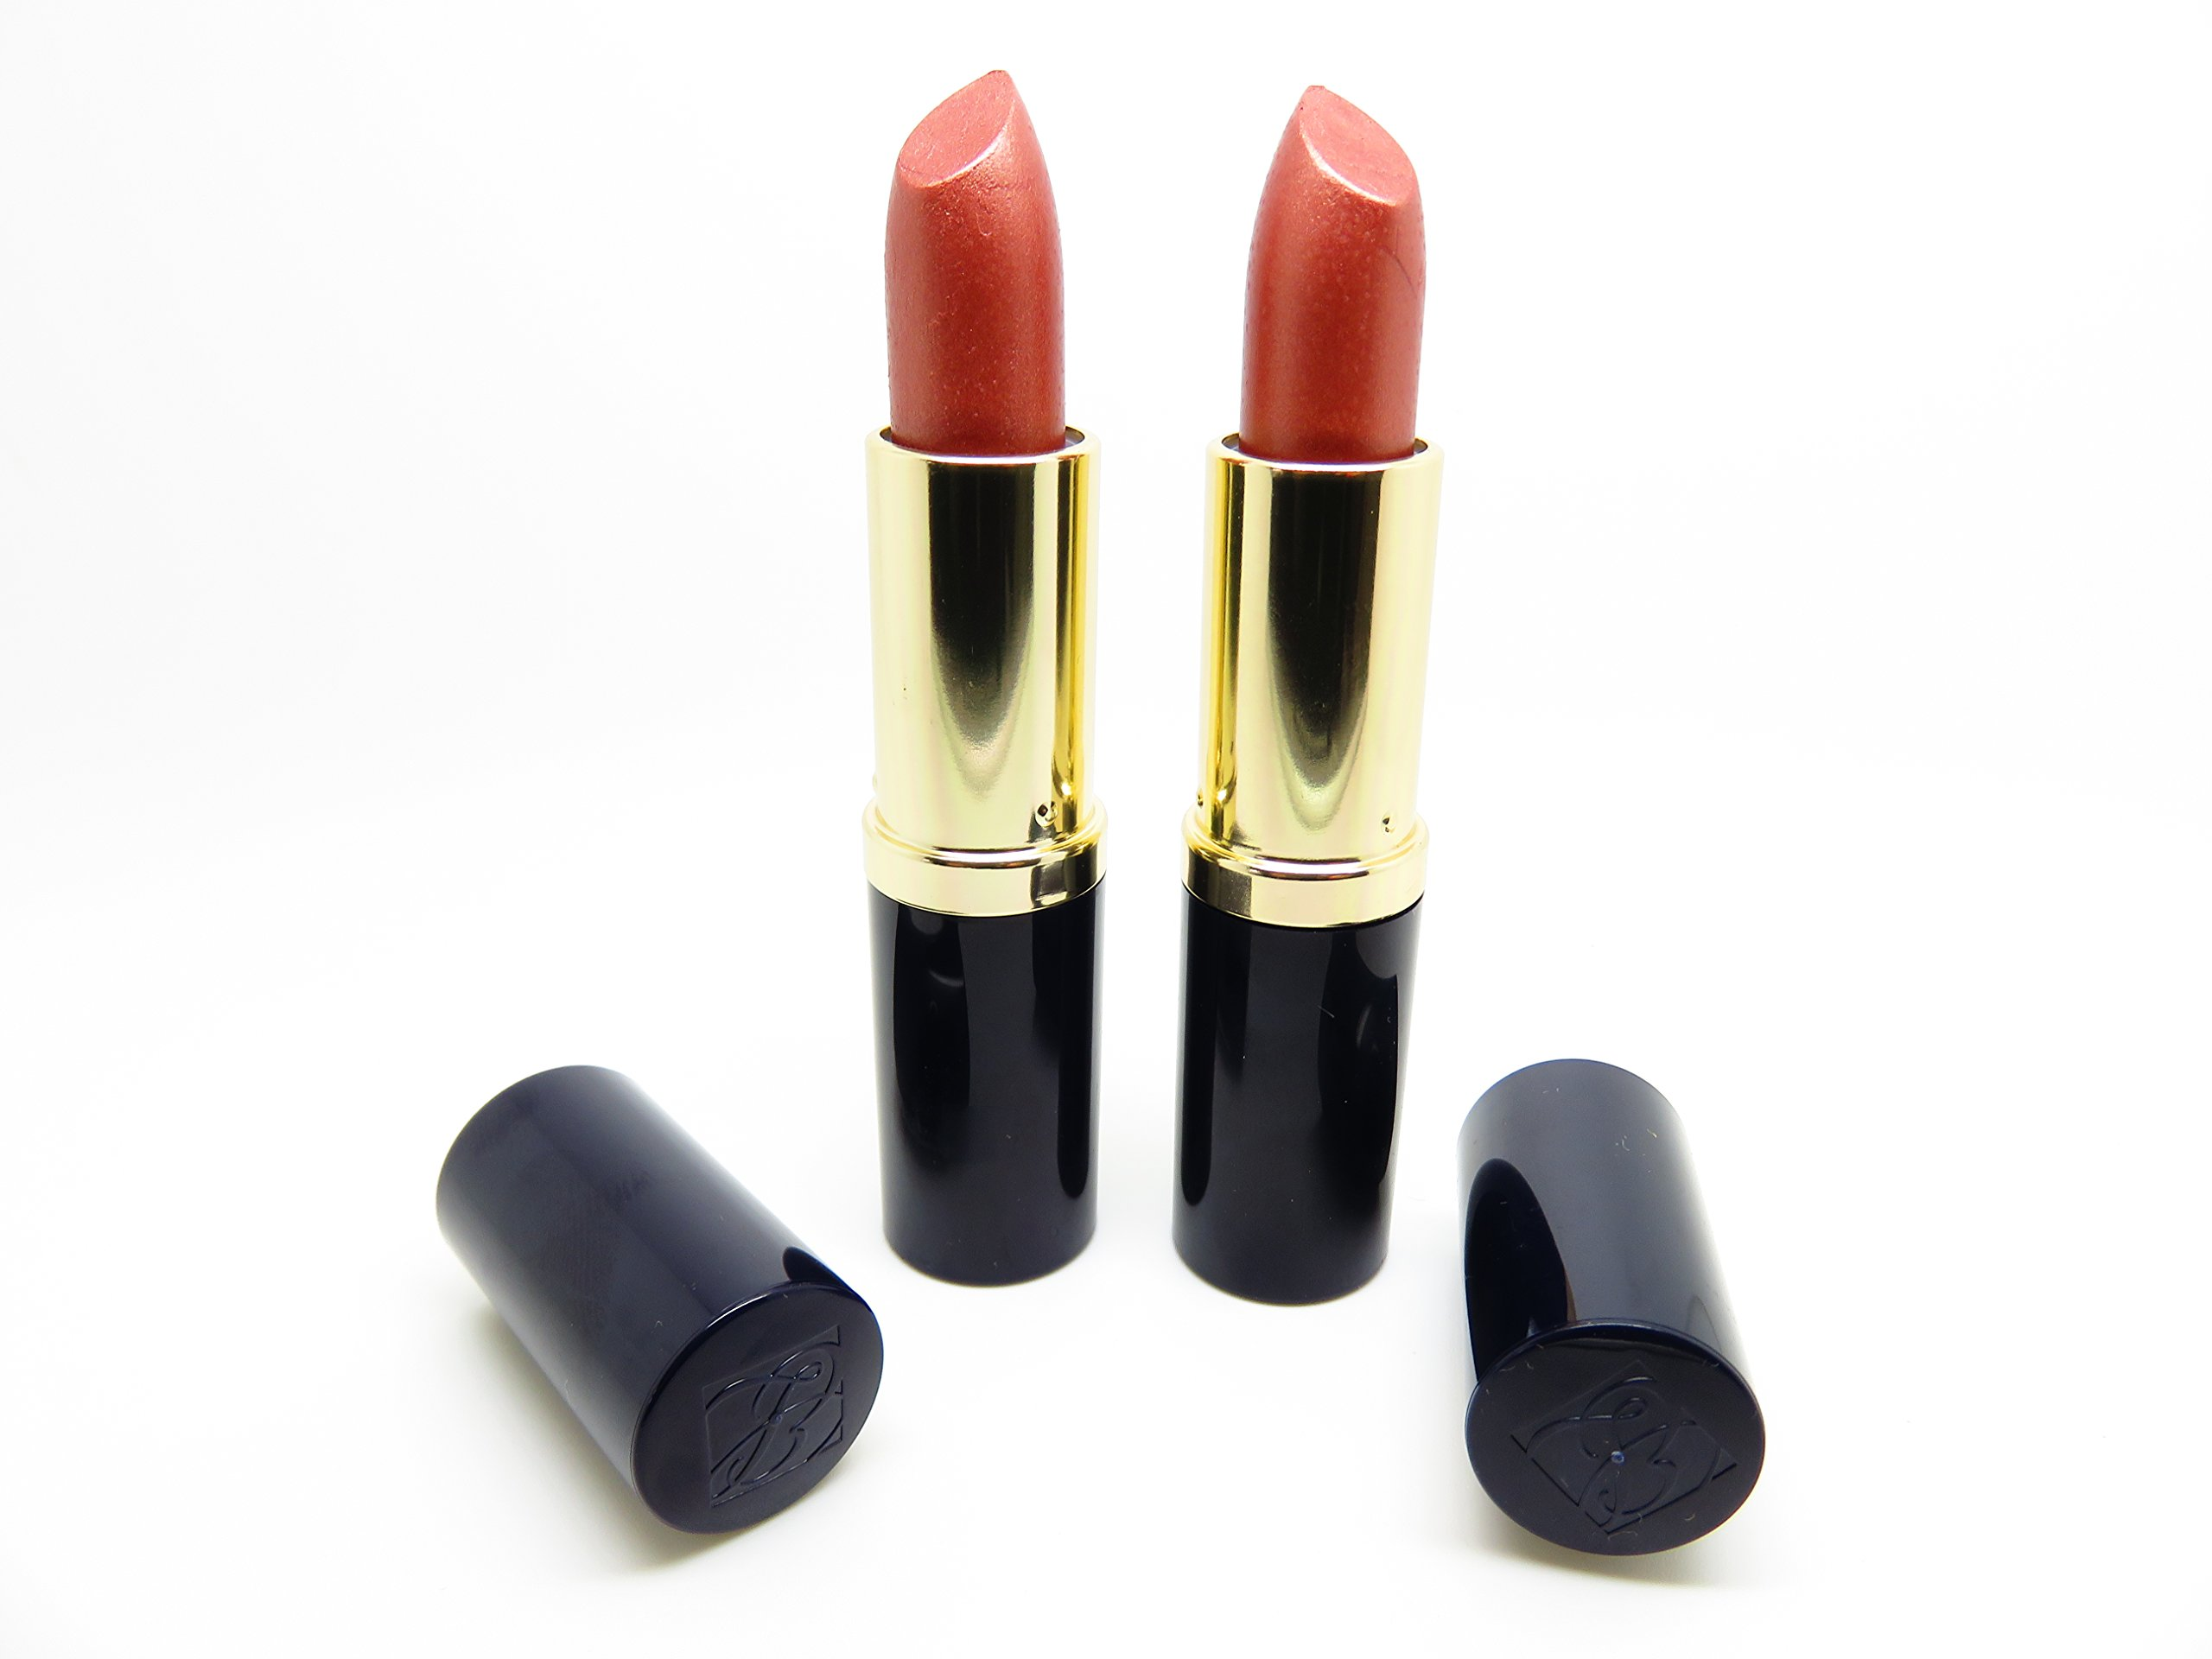 New! 2 X Estee Lauder Lipstick Pure Color 83 Sugar Honey Shimmer, Full Size by Estee Lauder